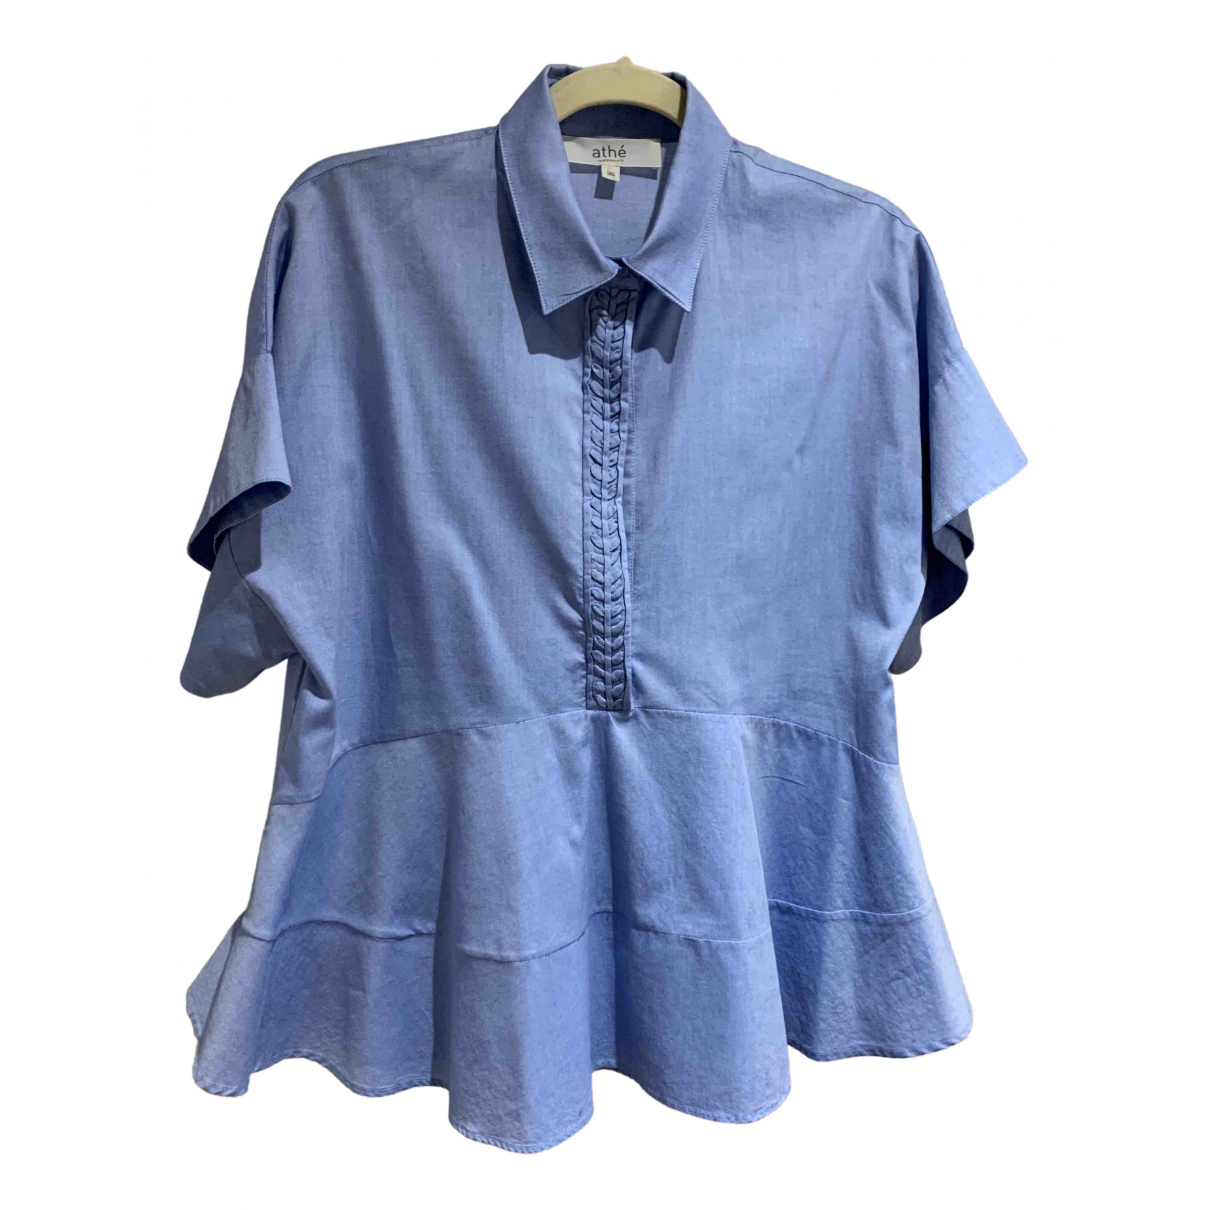 Vanessa Bruno Athe \N Cotton  top for Women 36 FR